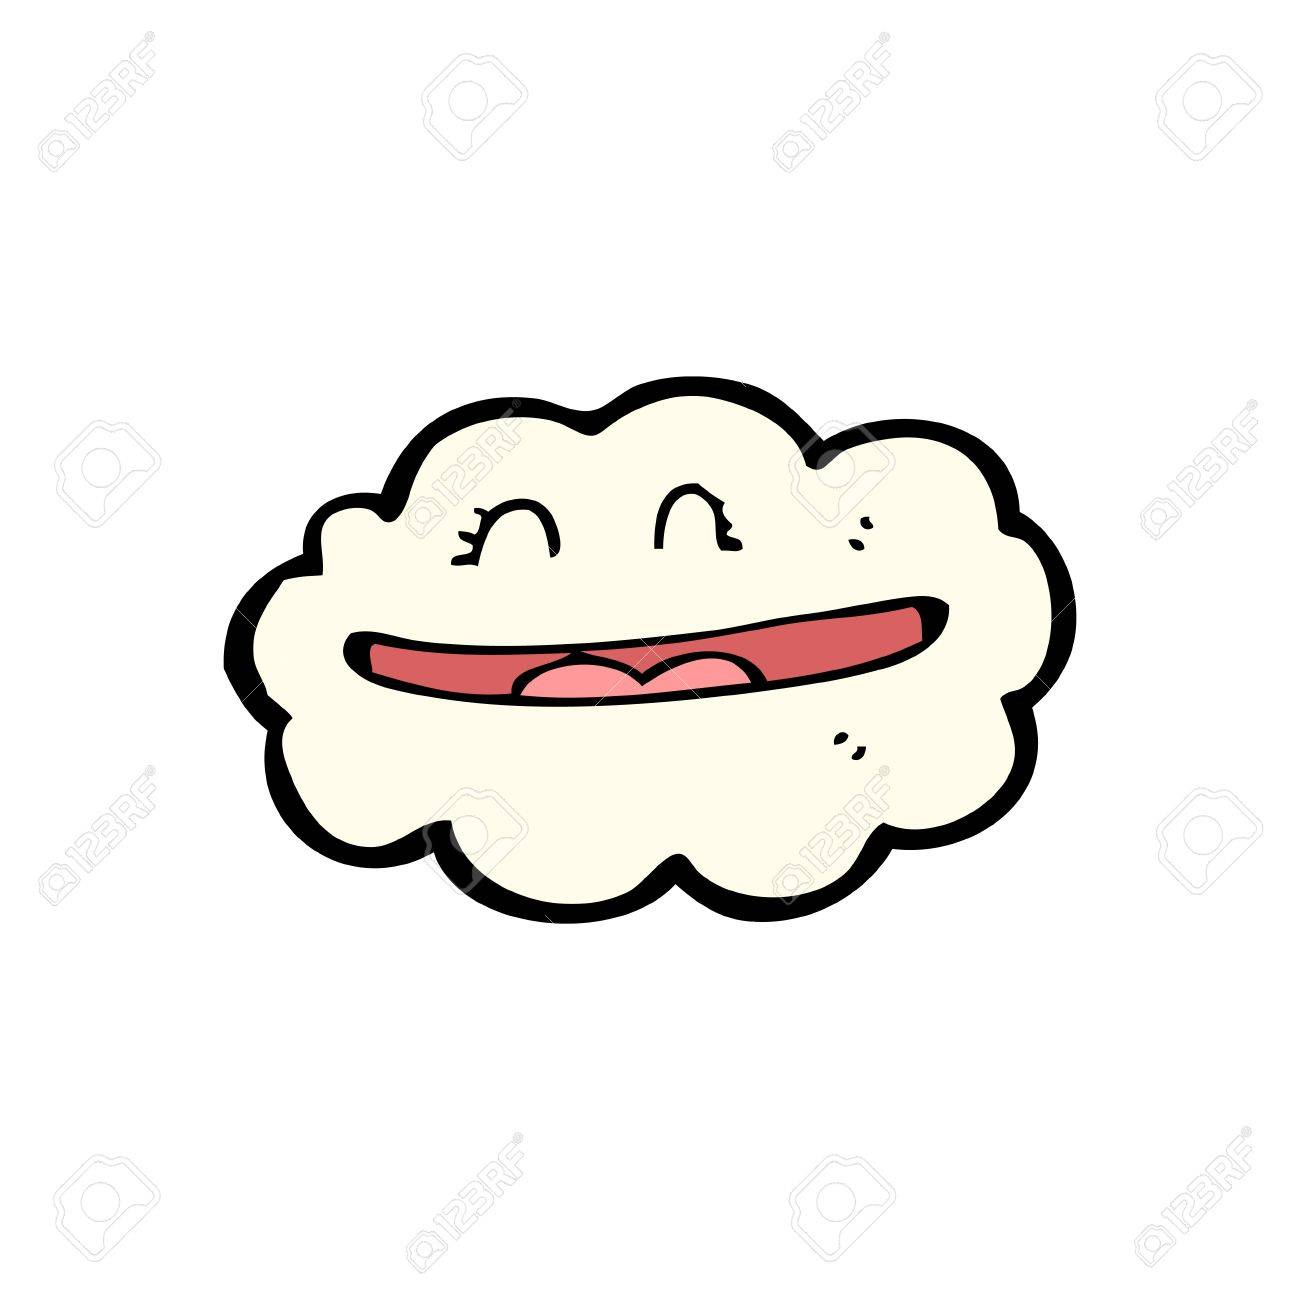 Cartoon Cloud With Smiley Face Royalty Free Cliparts Vectors And